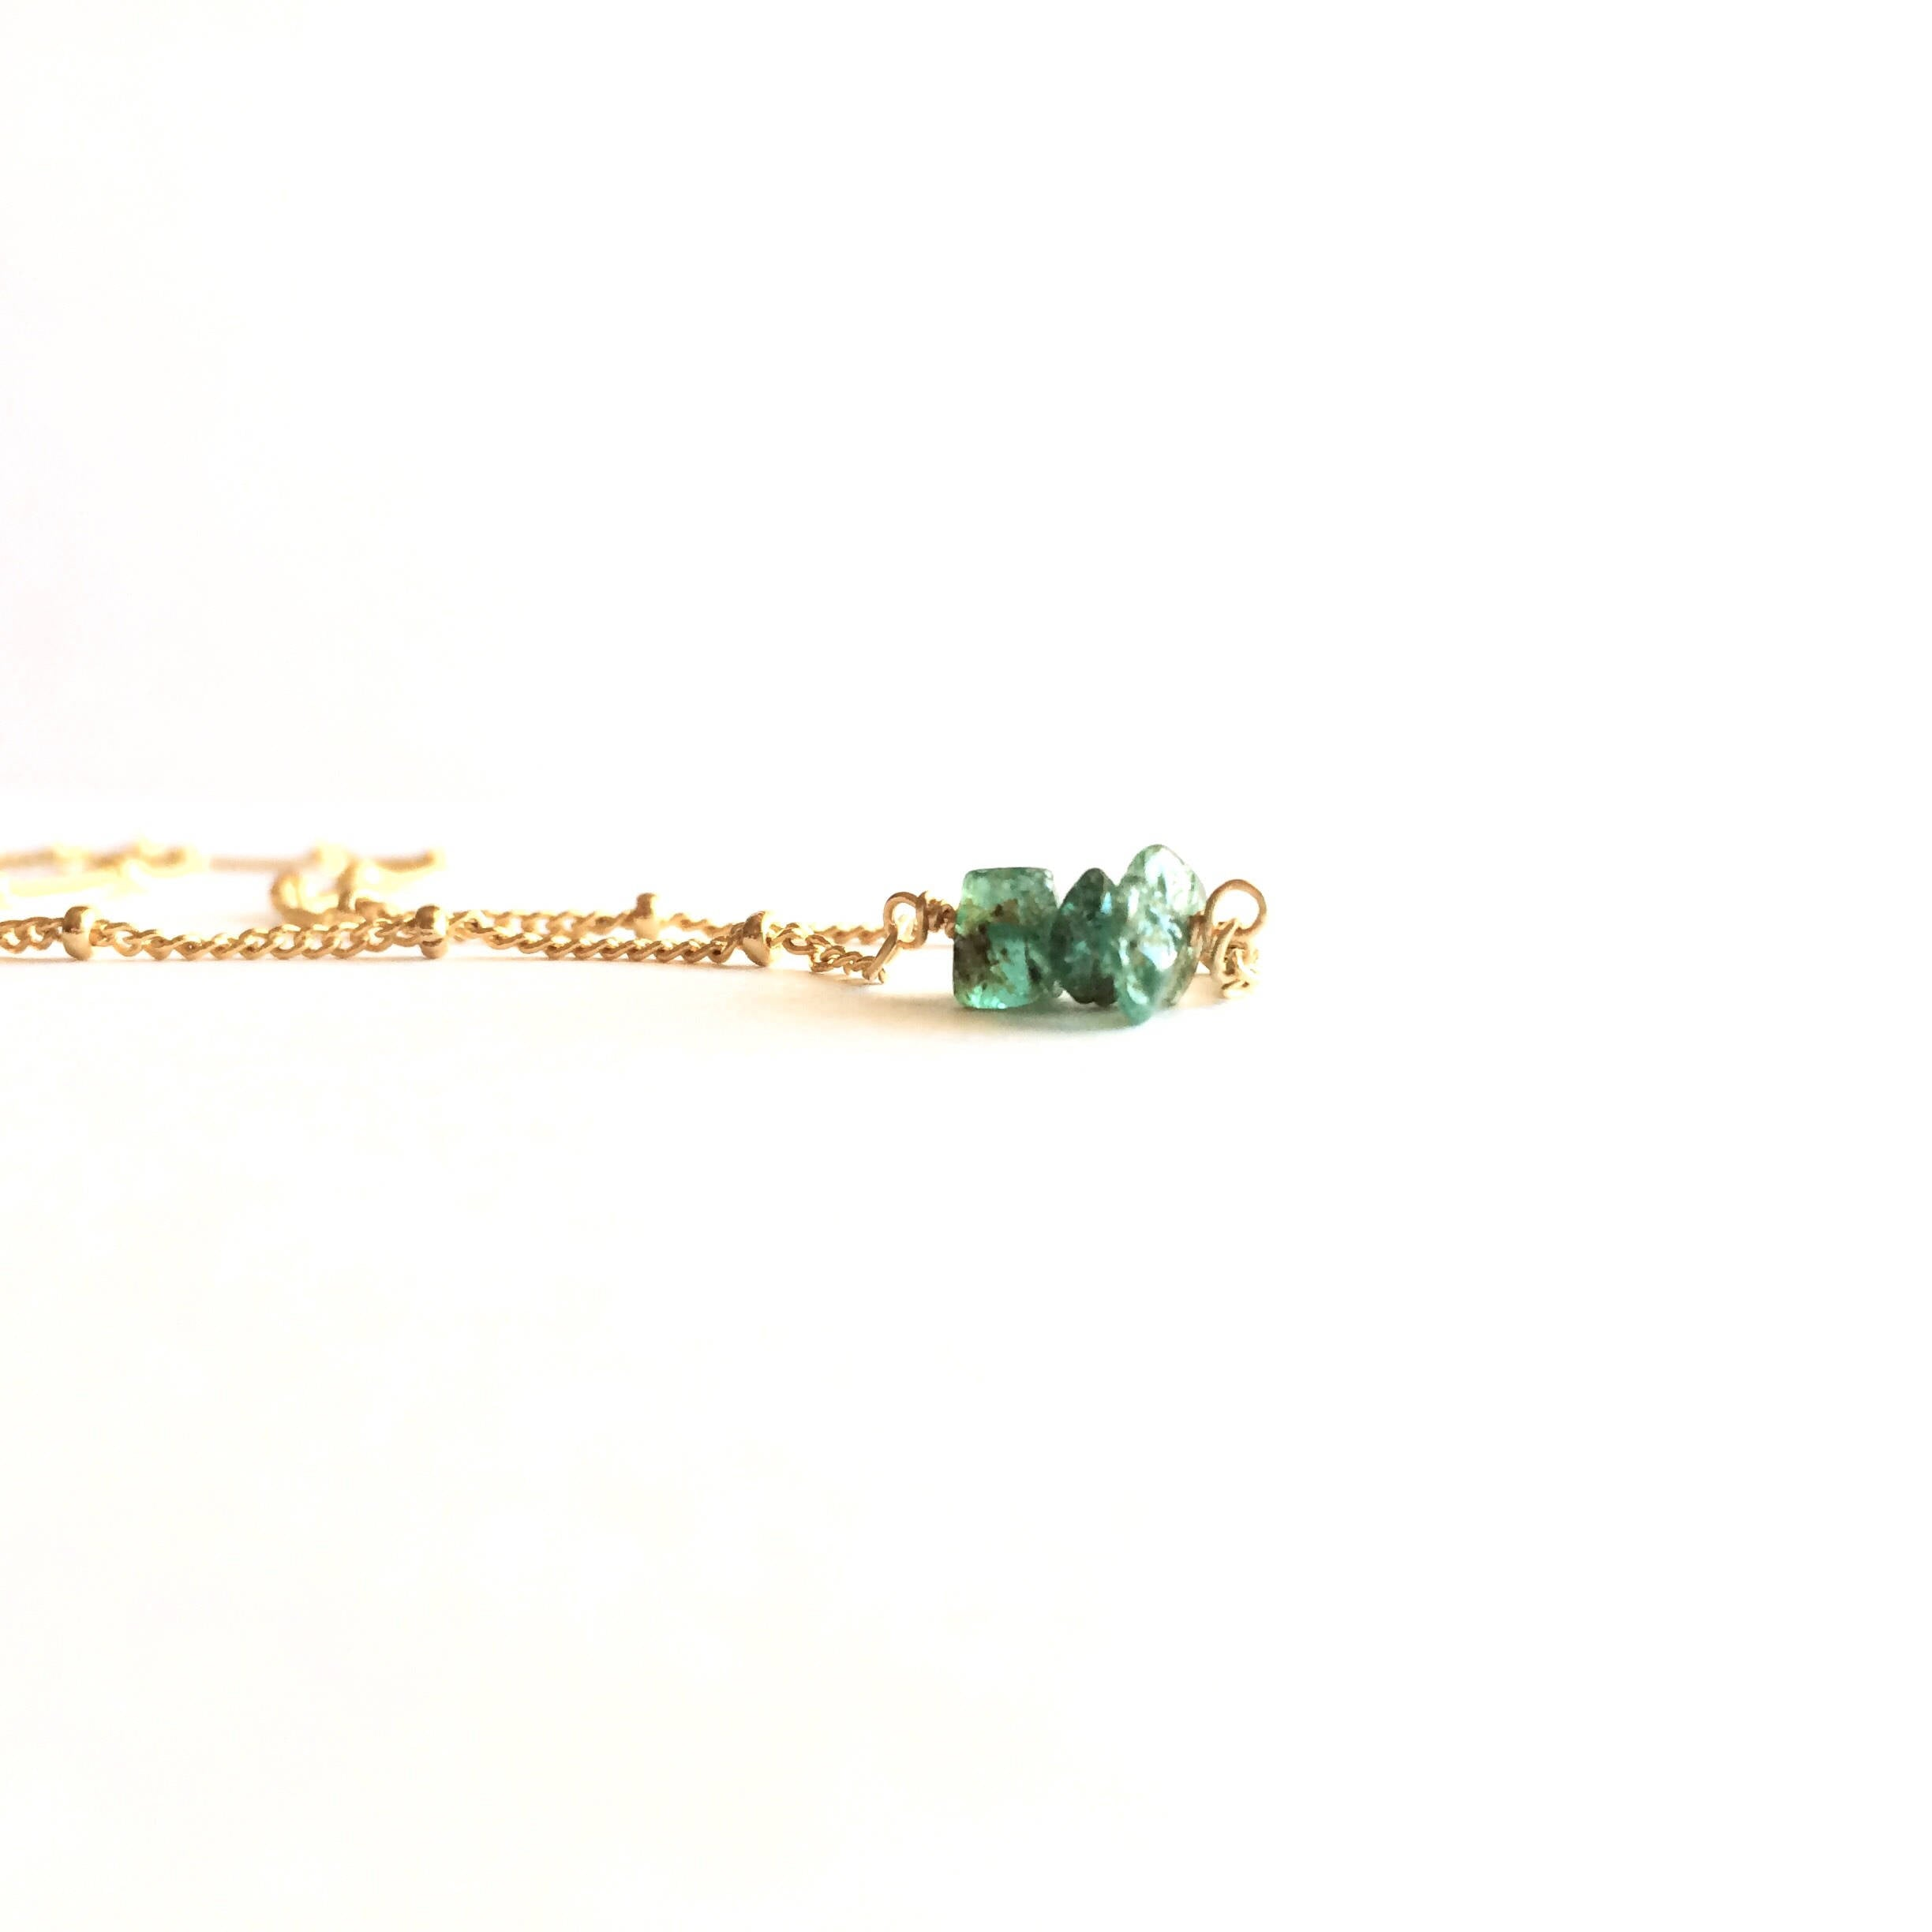 Tiny Raw Emerald Crystal Satellite Chain Necklace | IB Jewelry